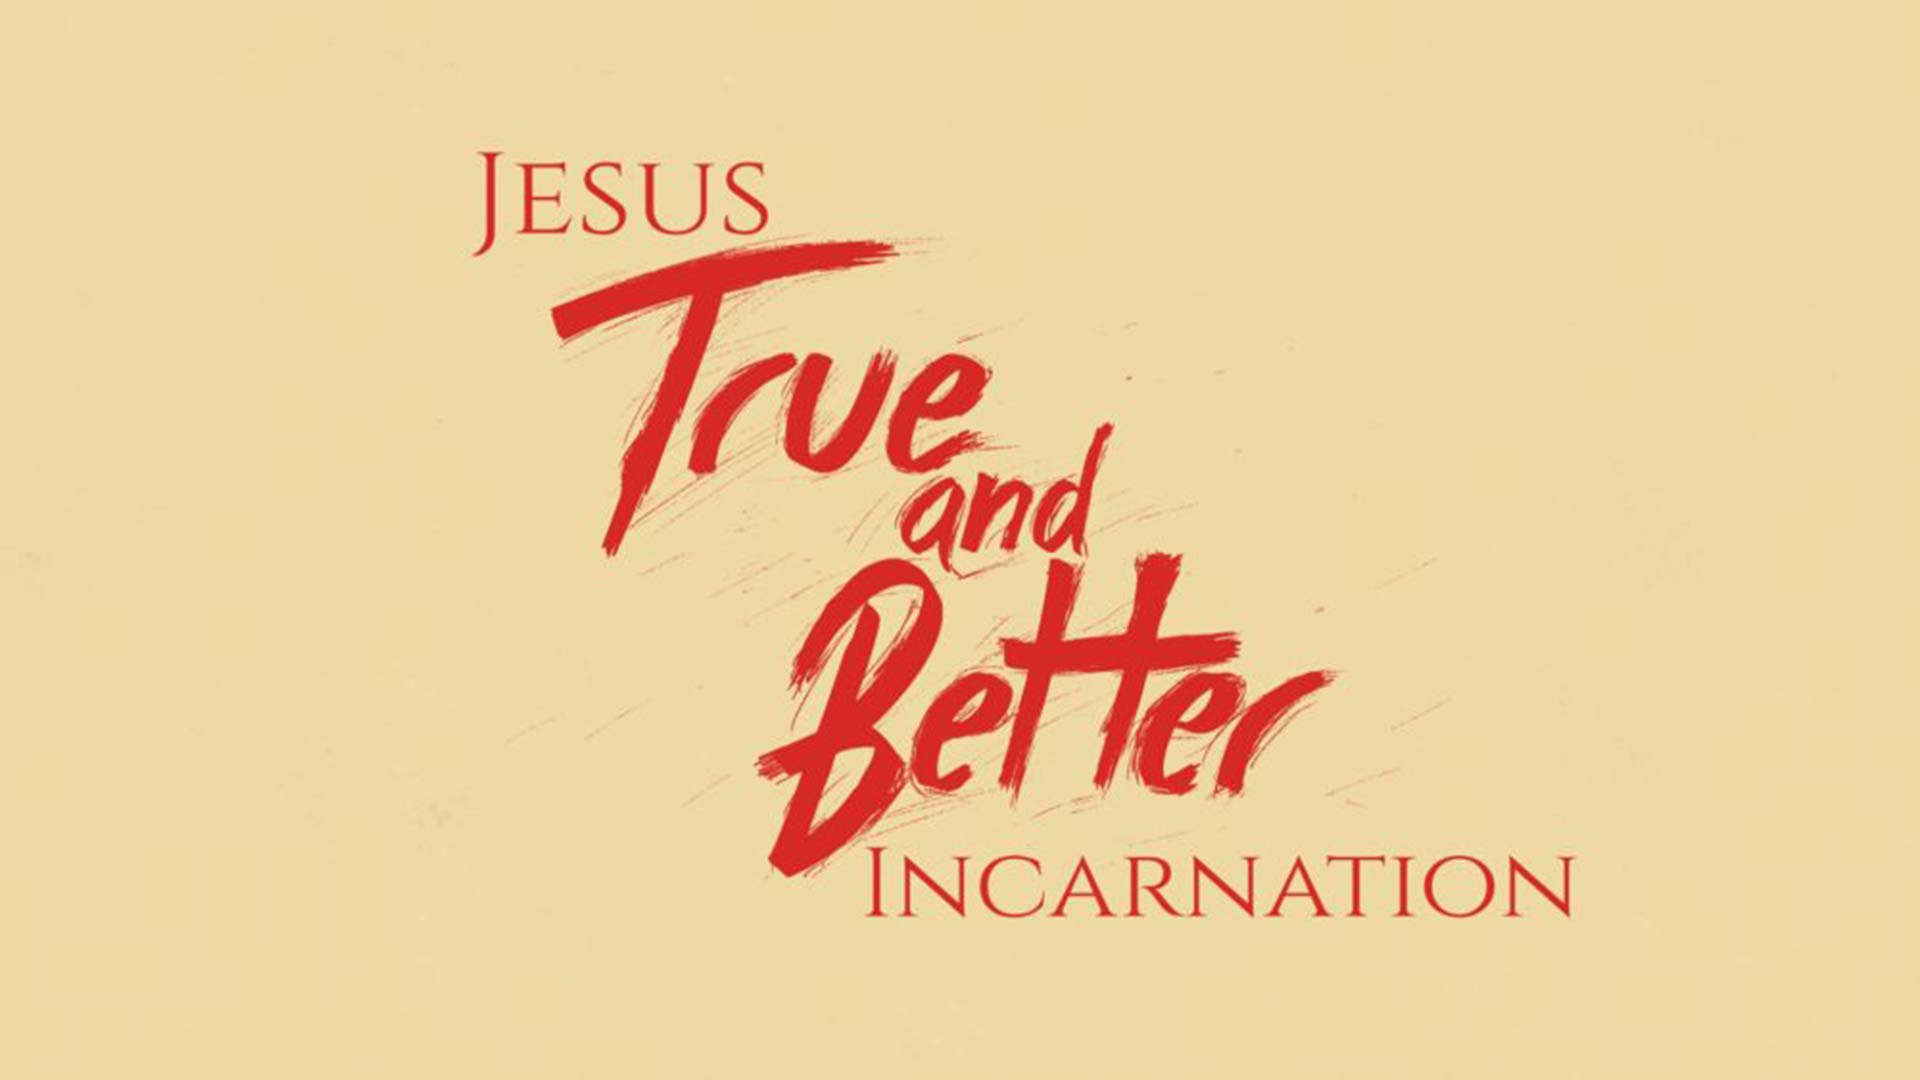 Jesus: True and Better Incarnation Image